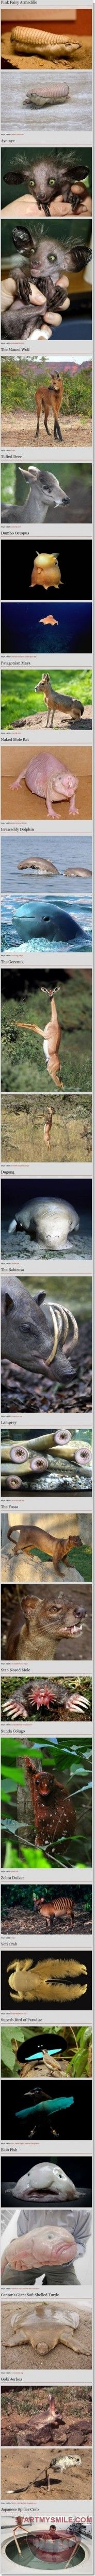 ROFL, this is funny Weird animals errmigawd